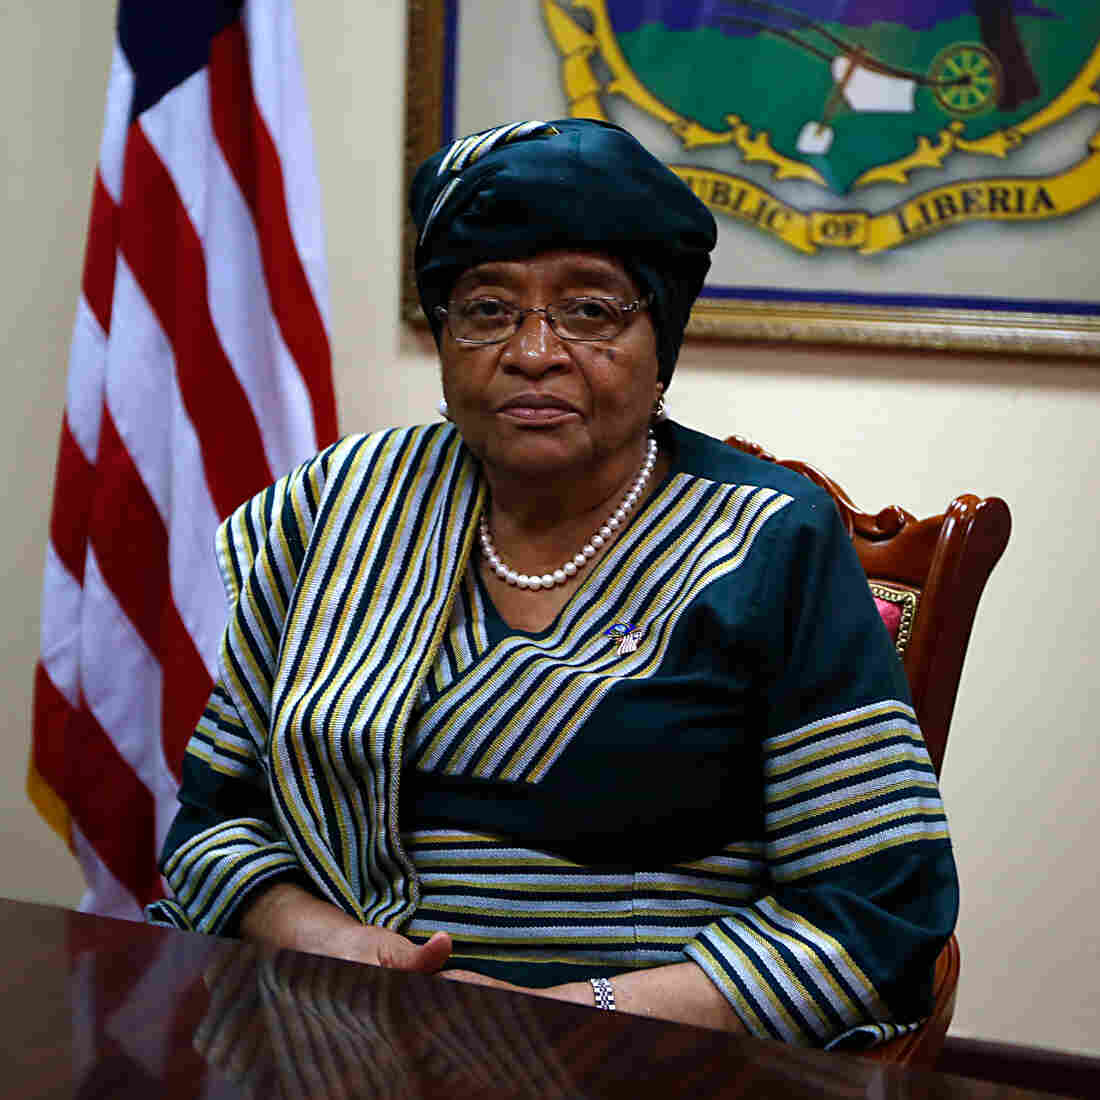 Liberian President's Ambitious Goal: No New Ebola Cases By Christmas